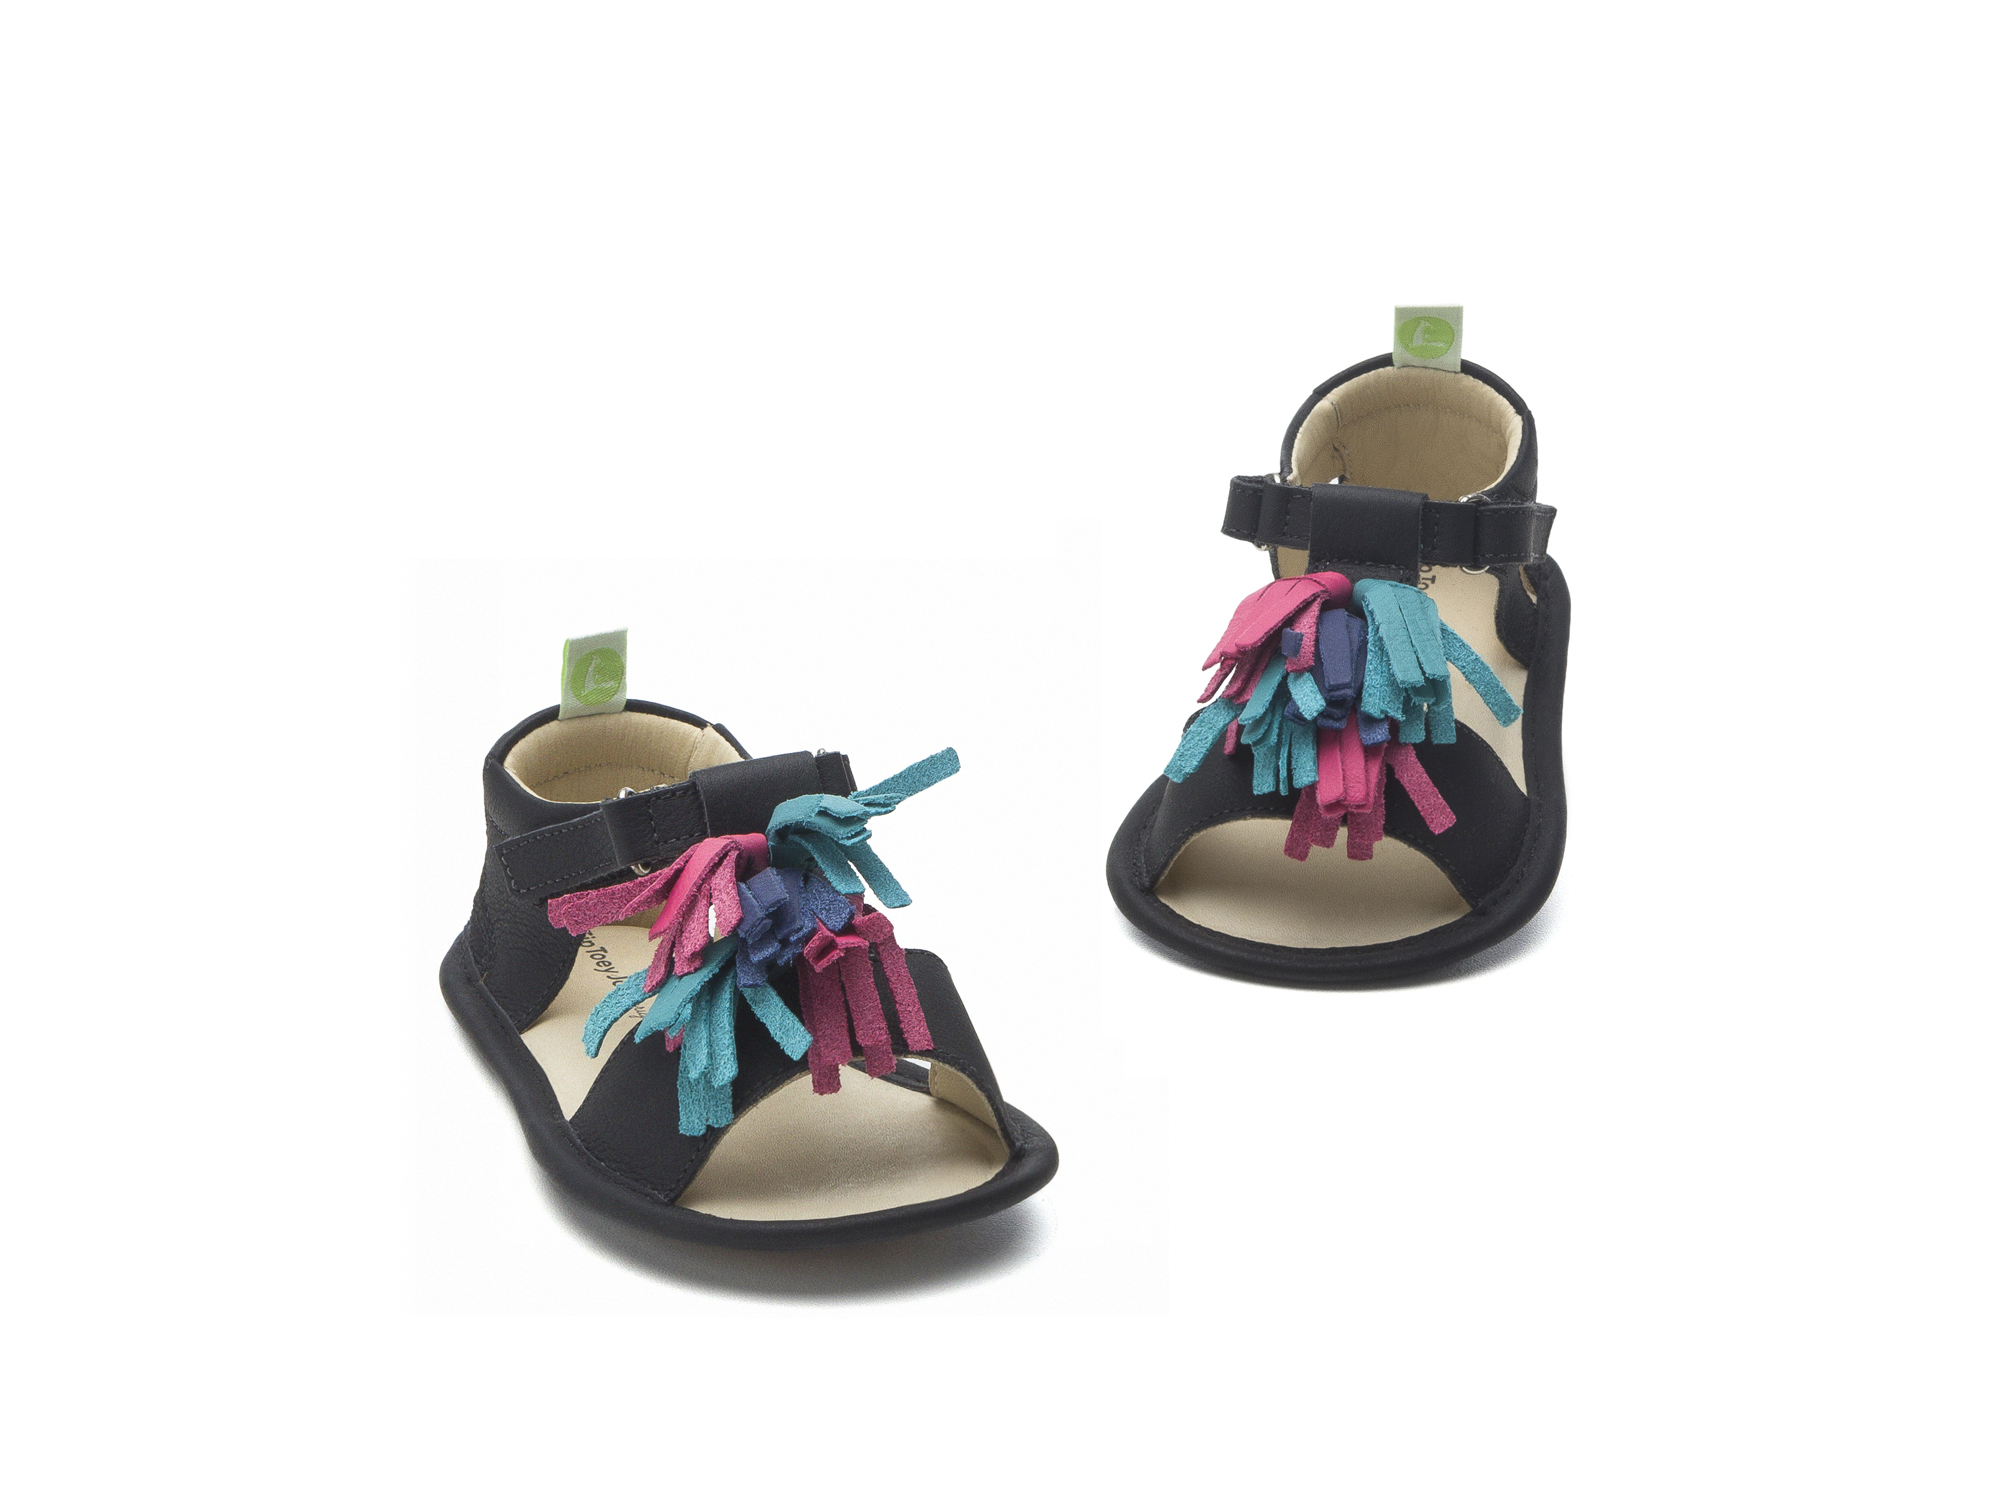 Sandal Folksy Black/ Tutti Frutti Baby for ages 0 to 2 years - 2